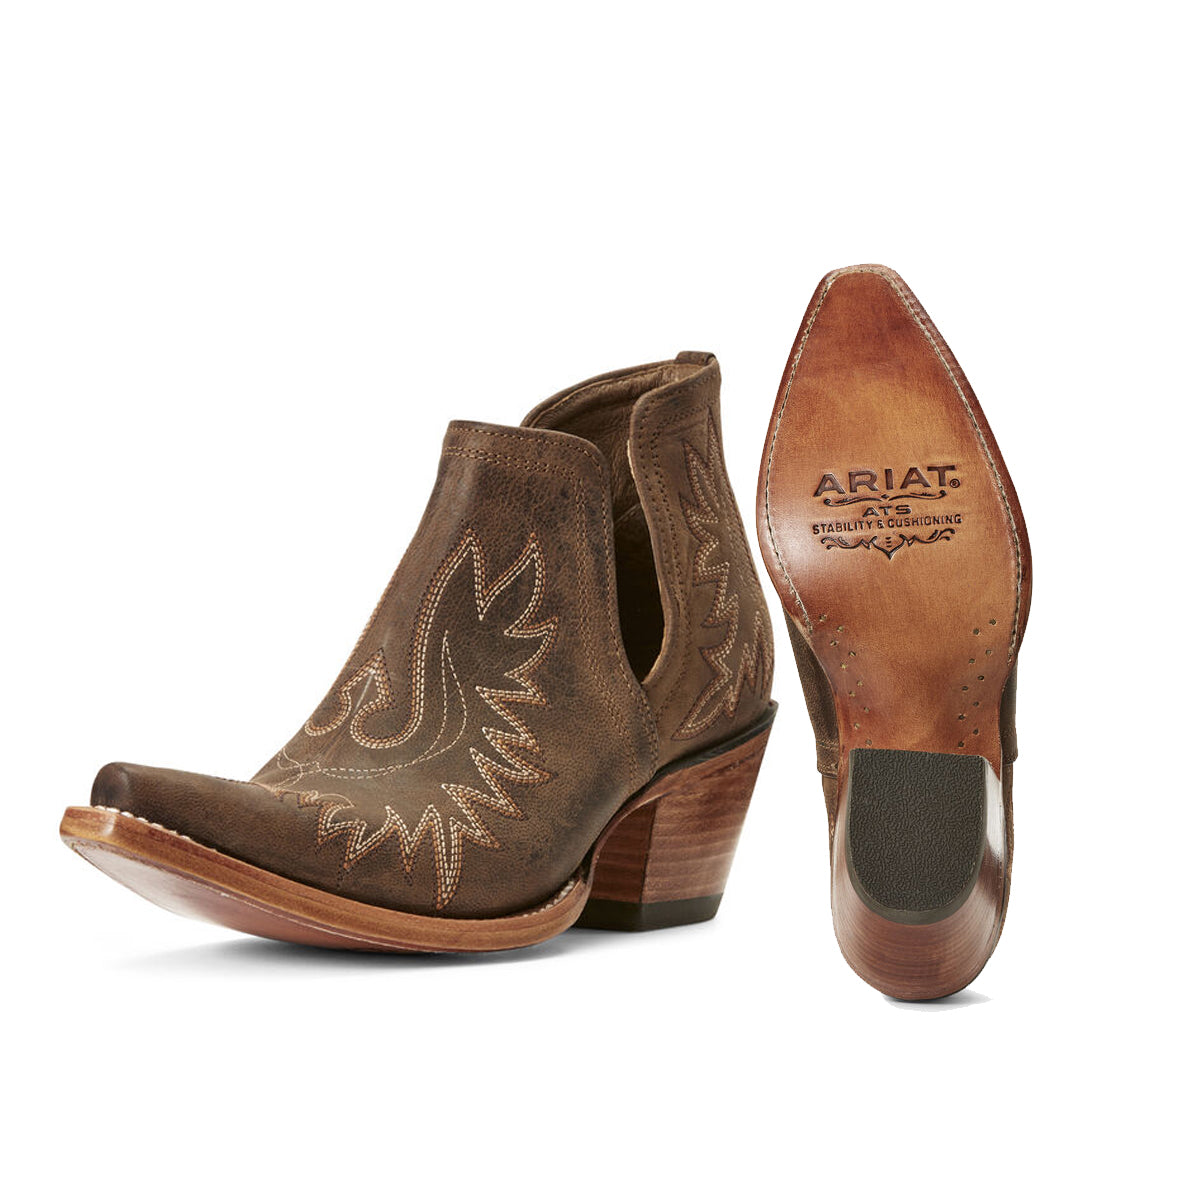 Ariat Women's Dixon Western Boots - Weathered Brown